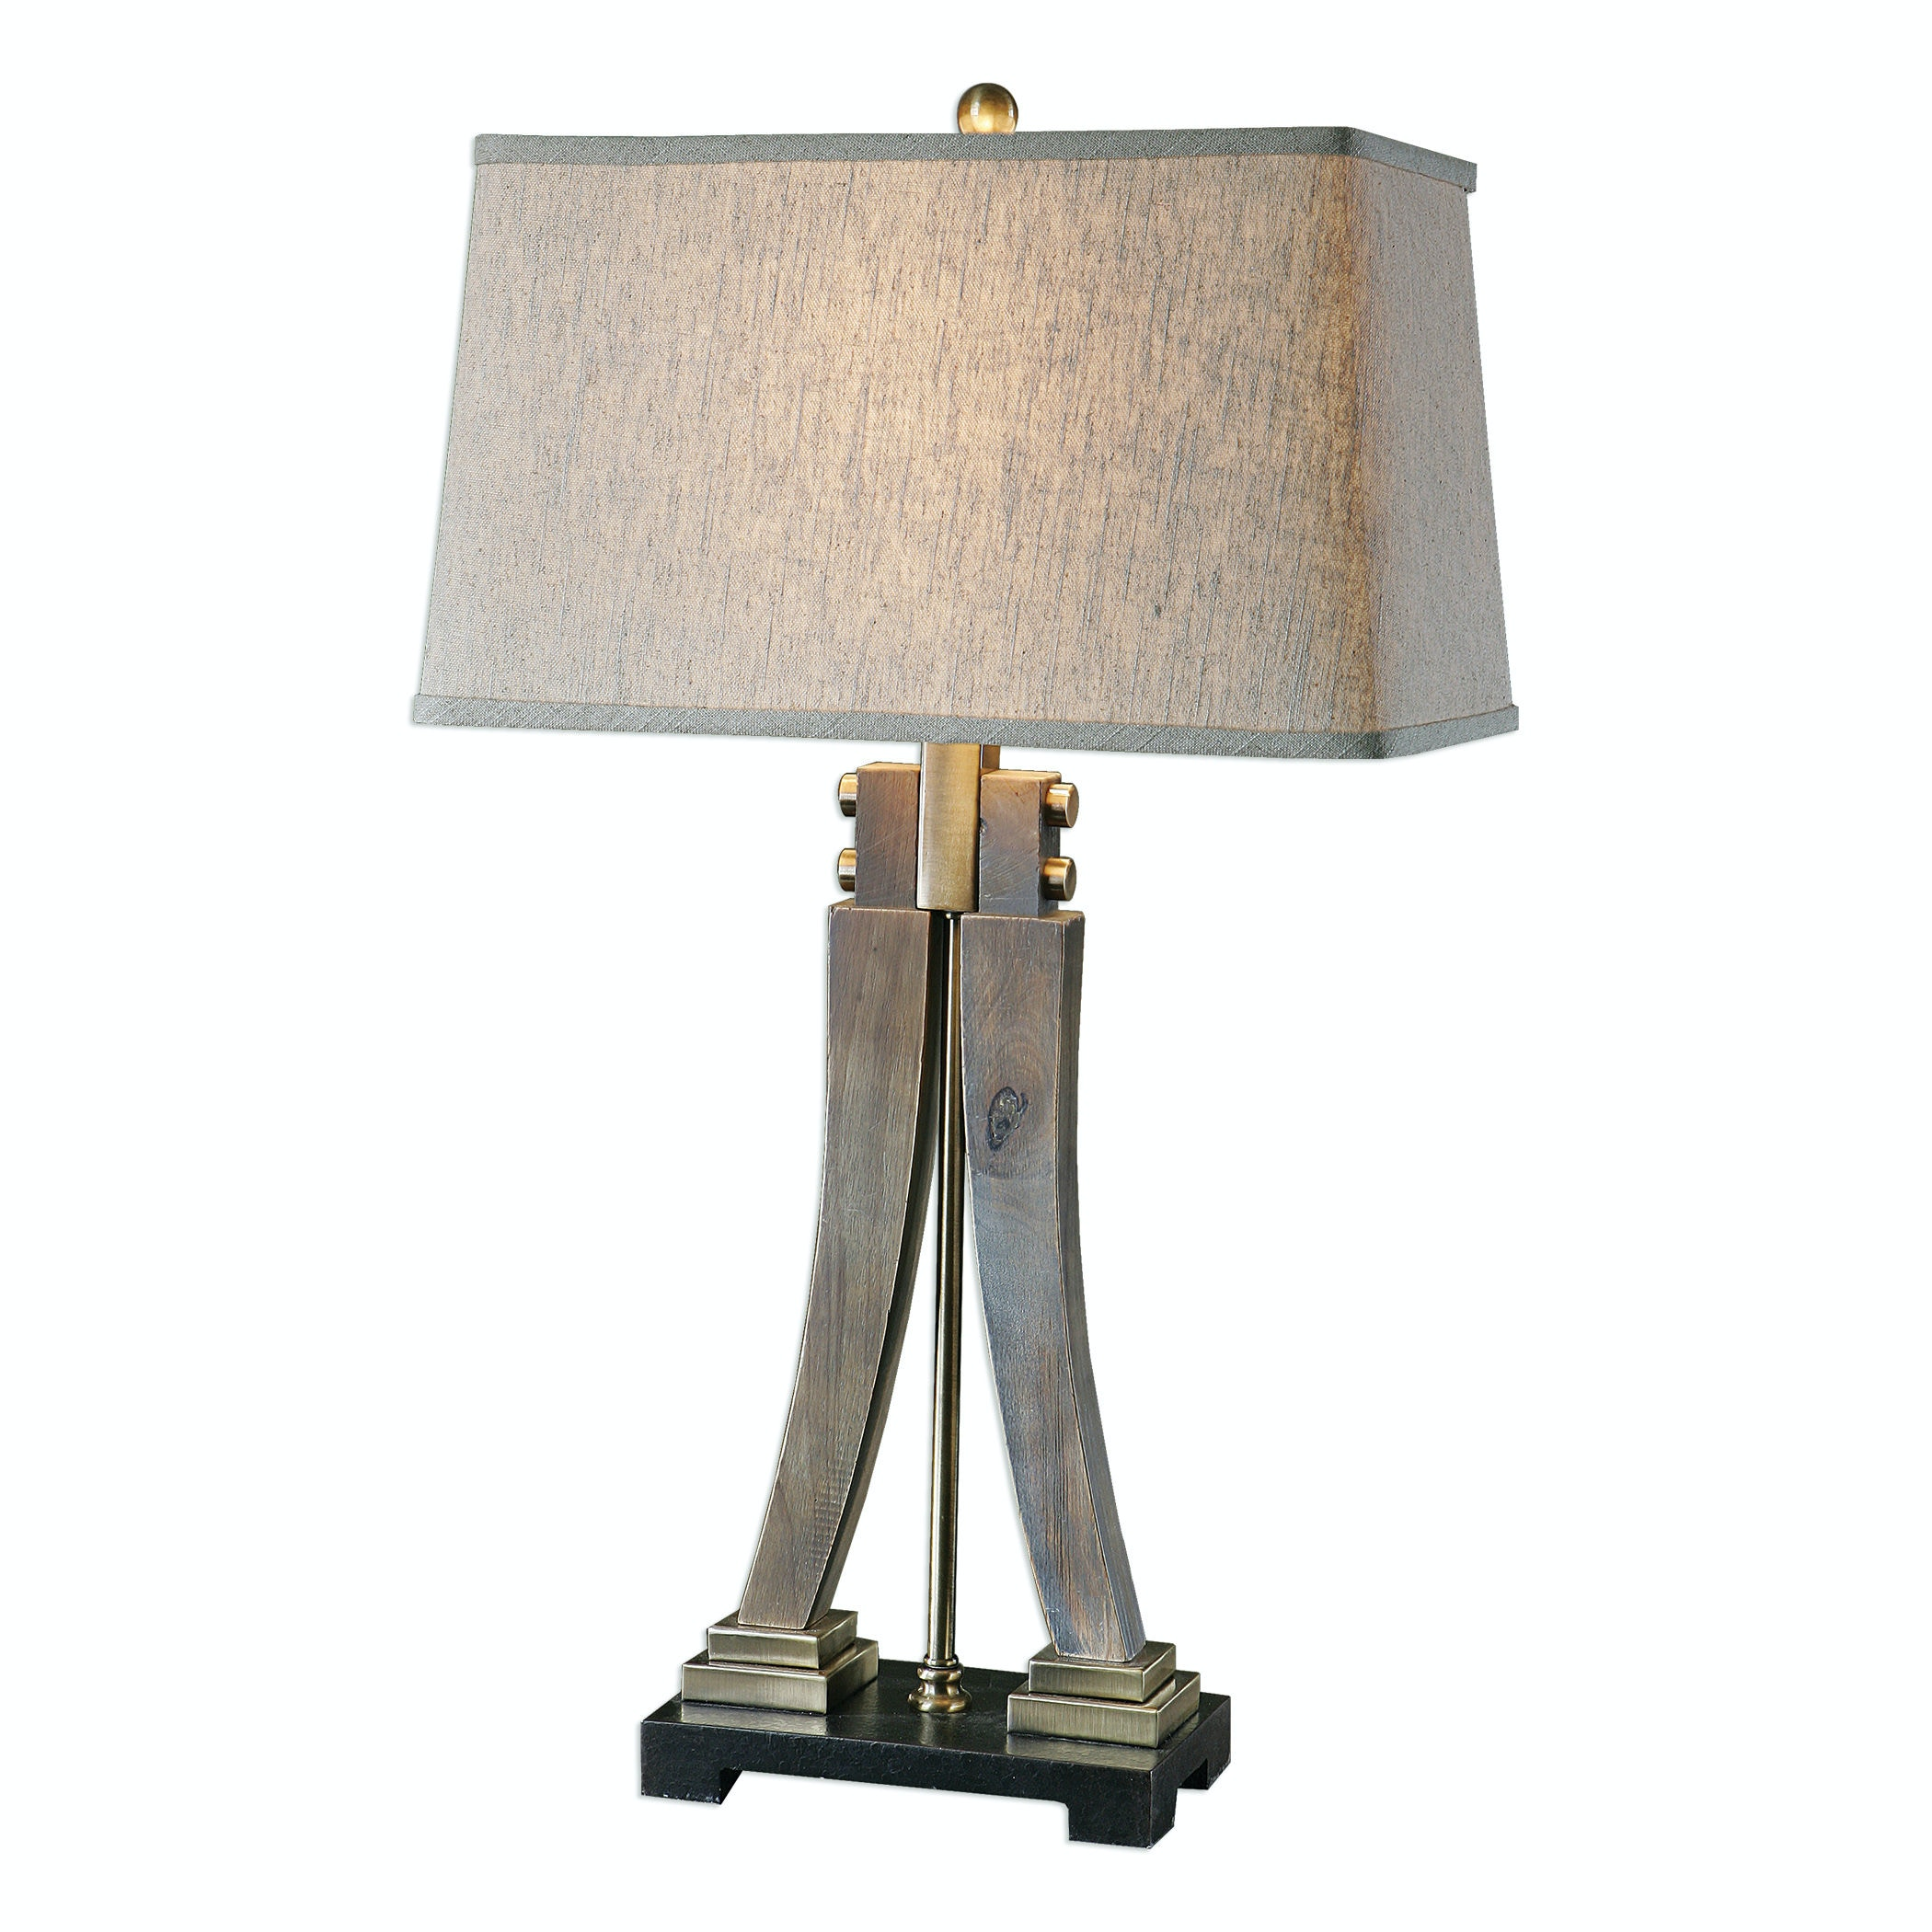 Arte Furniture Showroom Yerevan Uttermost Lamps And Lighting Yerevan Wood Leg Lamp 27220 Oasis